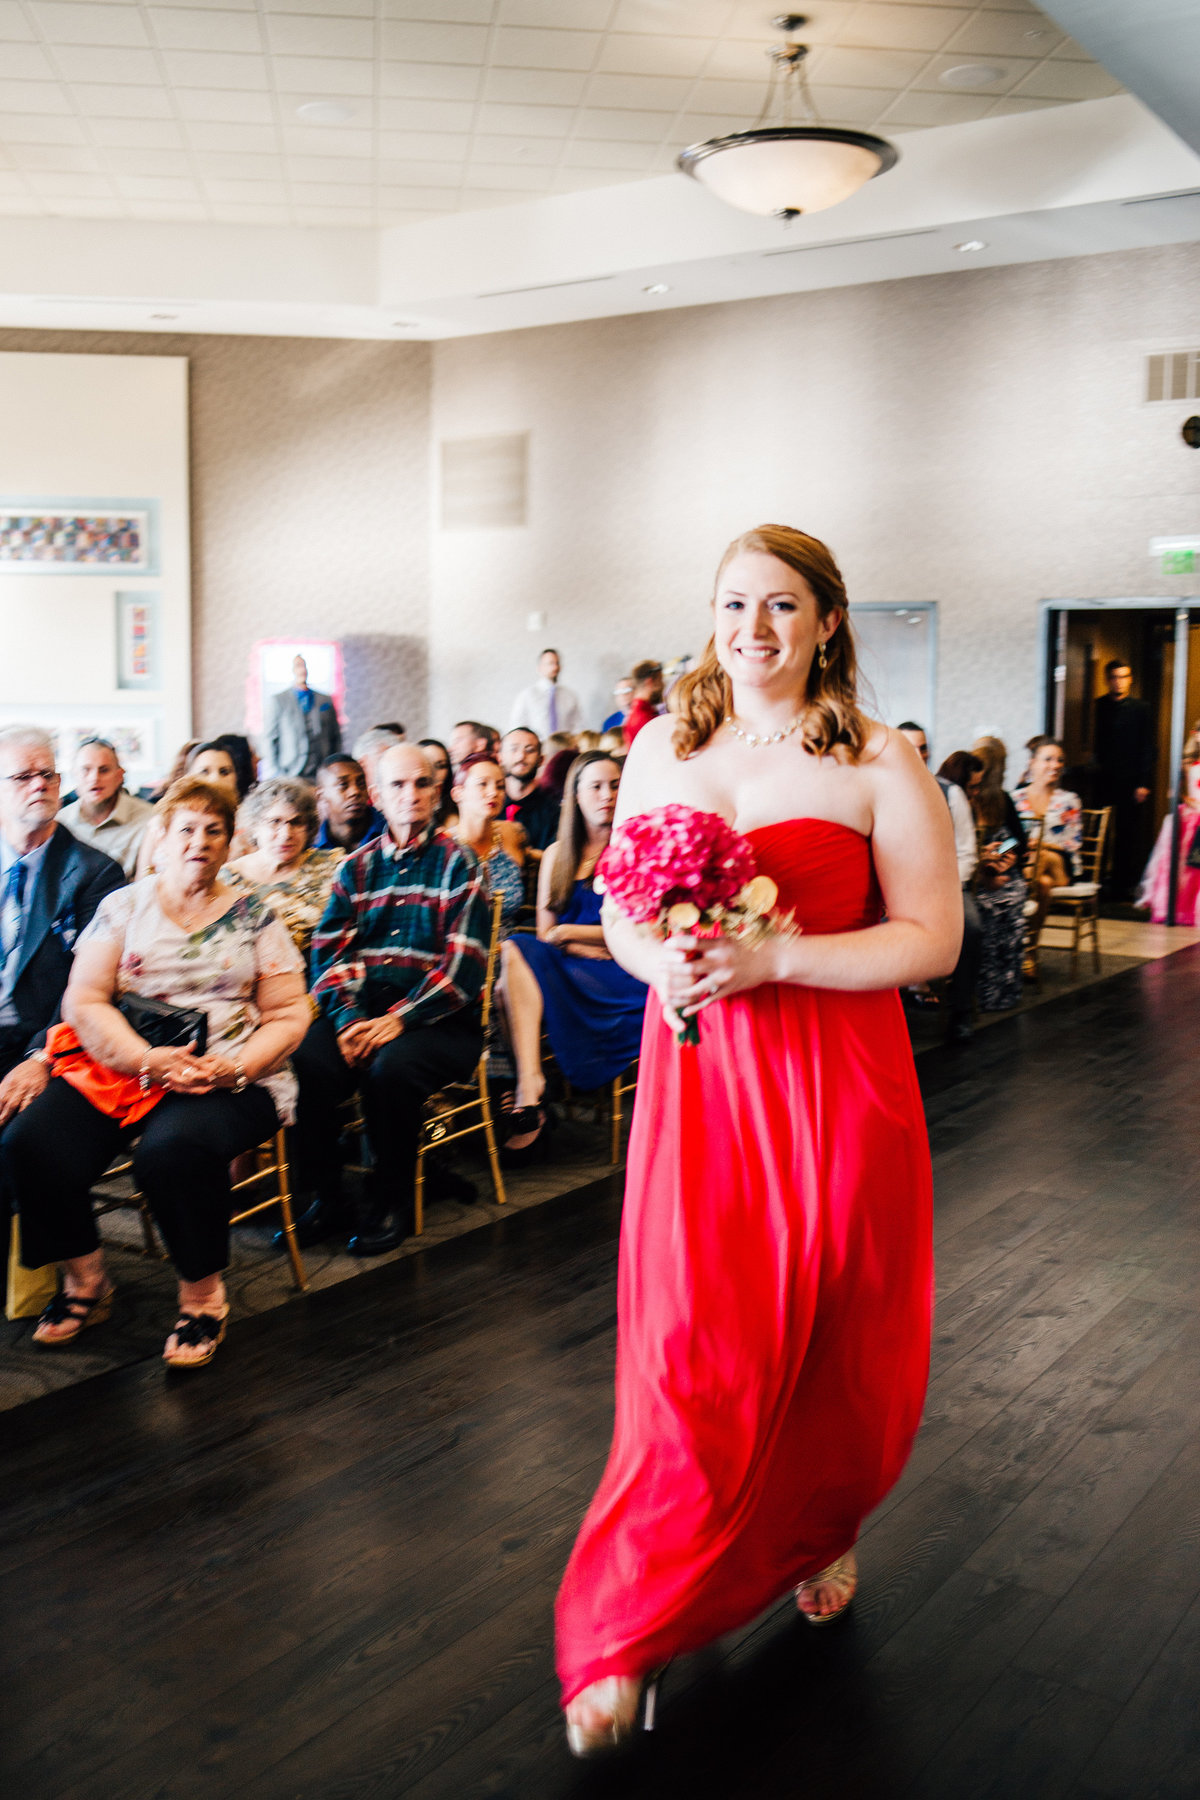 Kimberly_Hoyle_Photography_Milam_The_Back_Center_Melbourne_Wedding-27